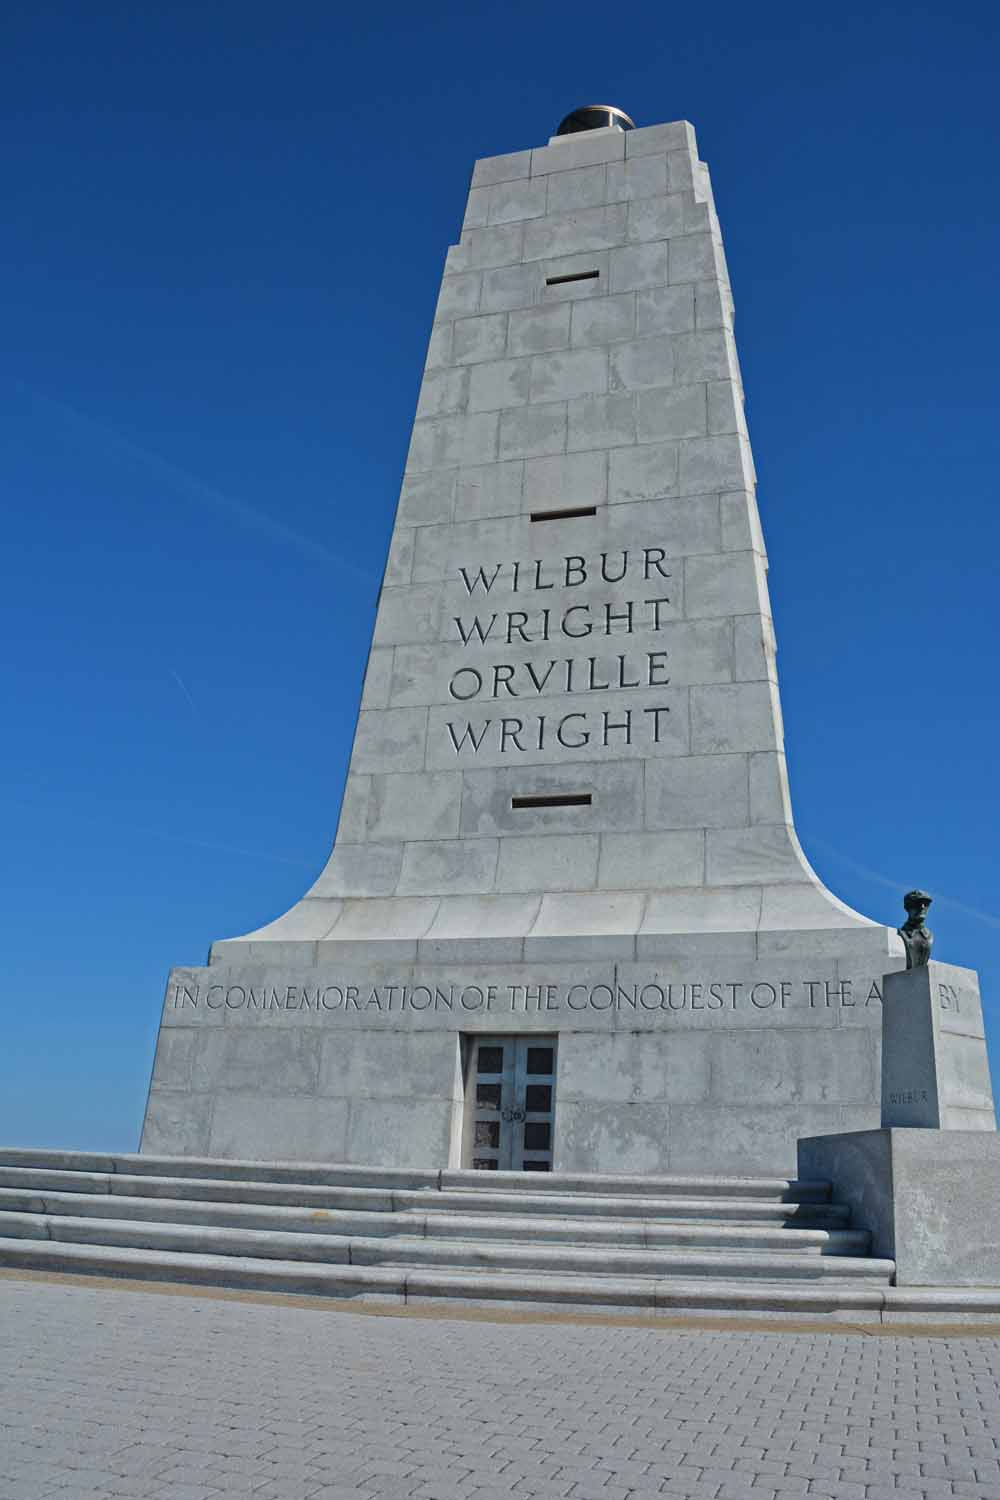 The east coast has plenty of history...here is an educational walk in the footsteps of the Wright Brothers